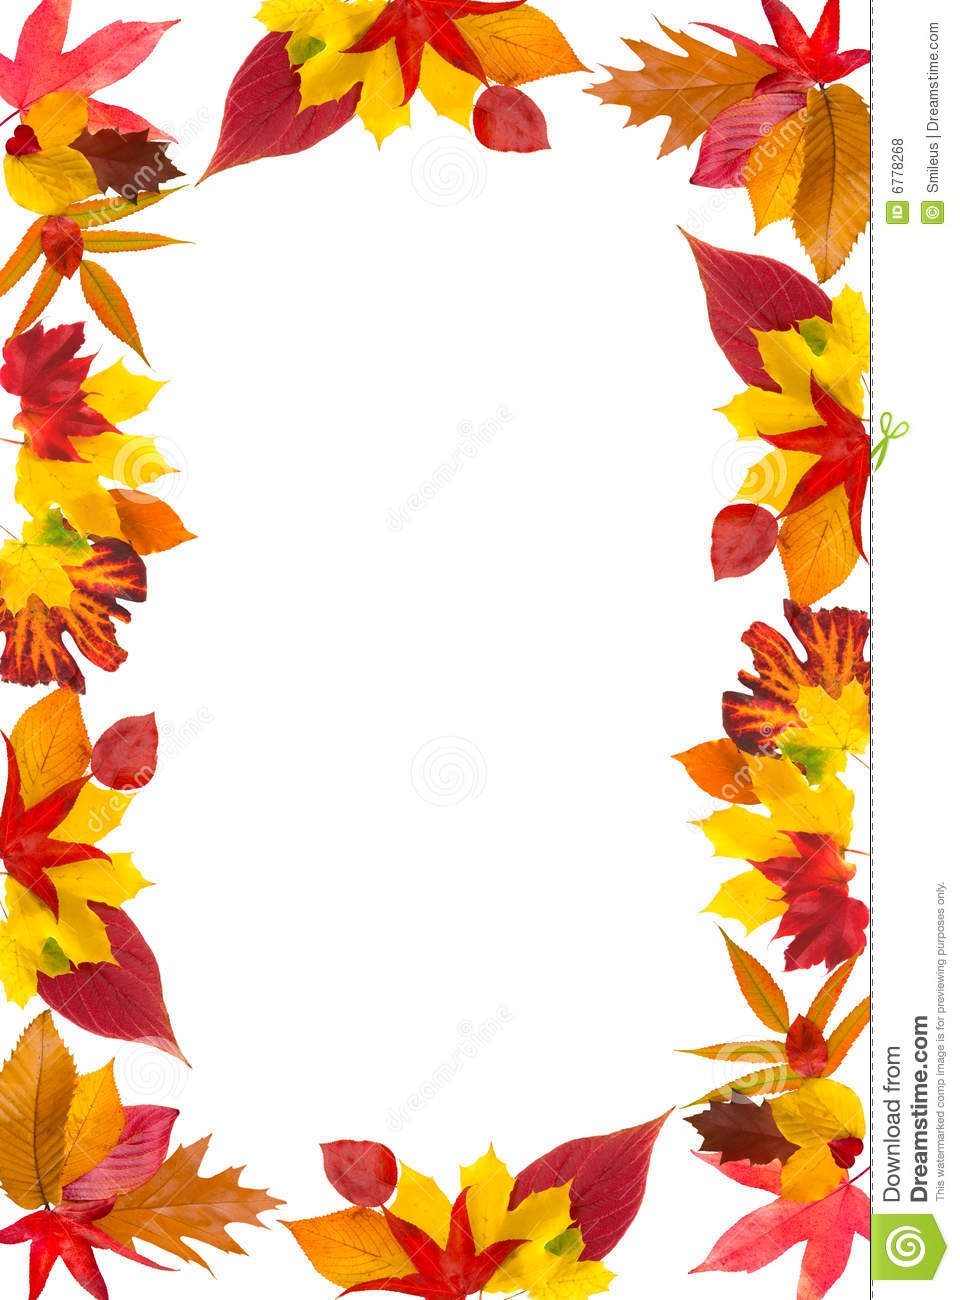 Fall Border Images | Free download best Fall Border Images ...